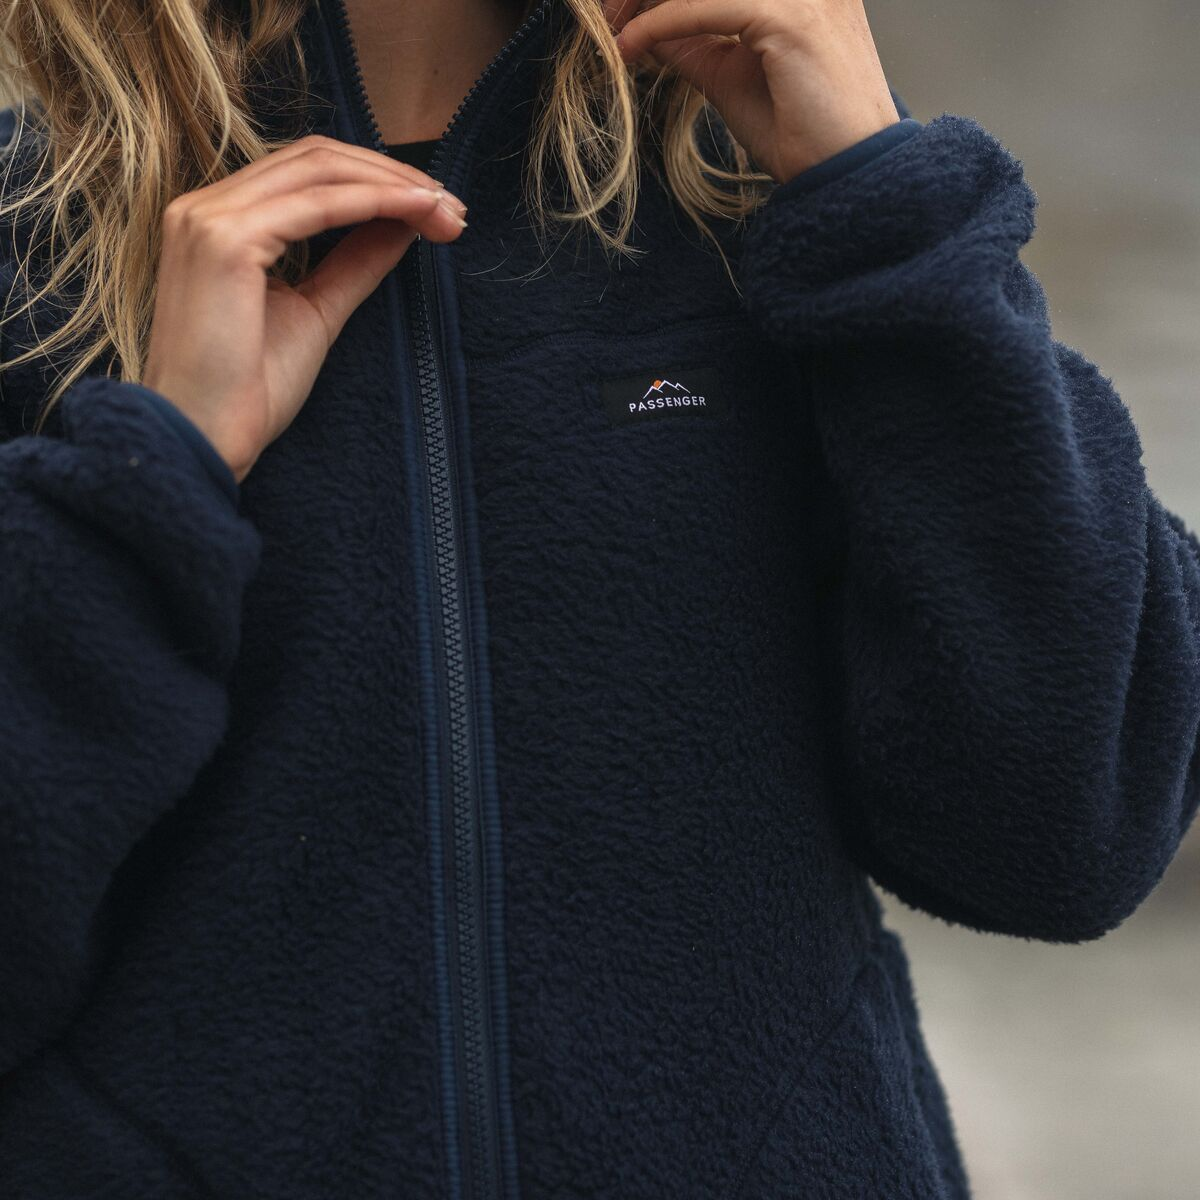 Fairbanks Full Zip Sherpa Fleece - Navy image 4